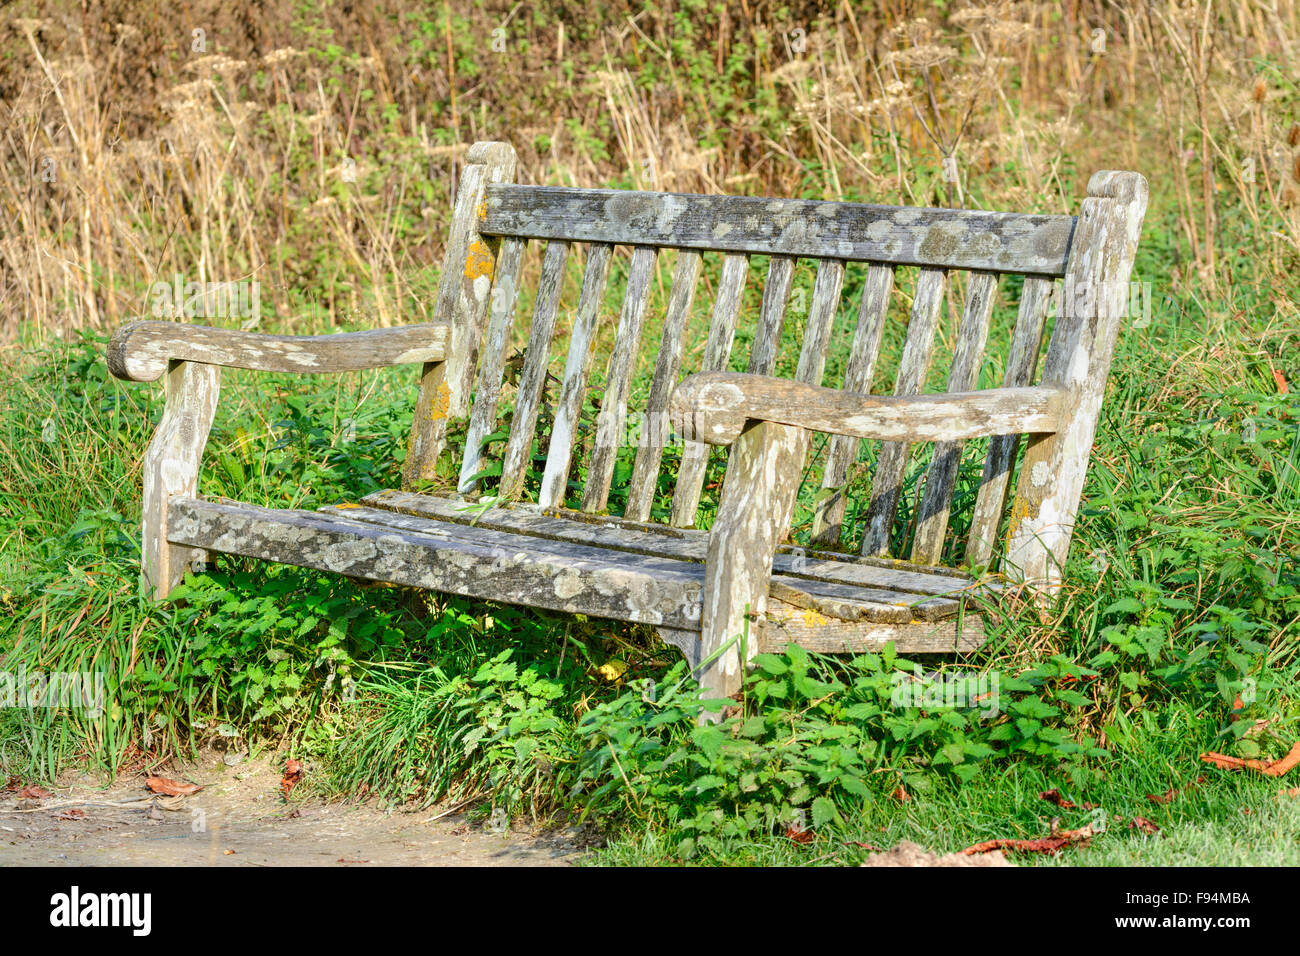 Rotting Old Wooden Bench In A Park Stock Photo 91687550 Alamy